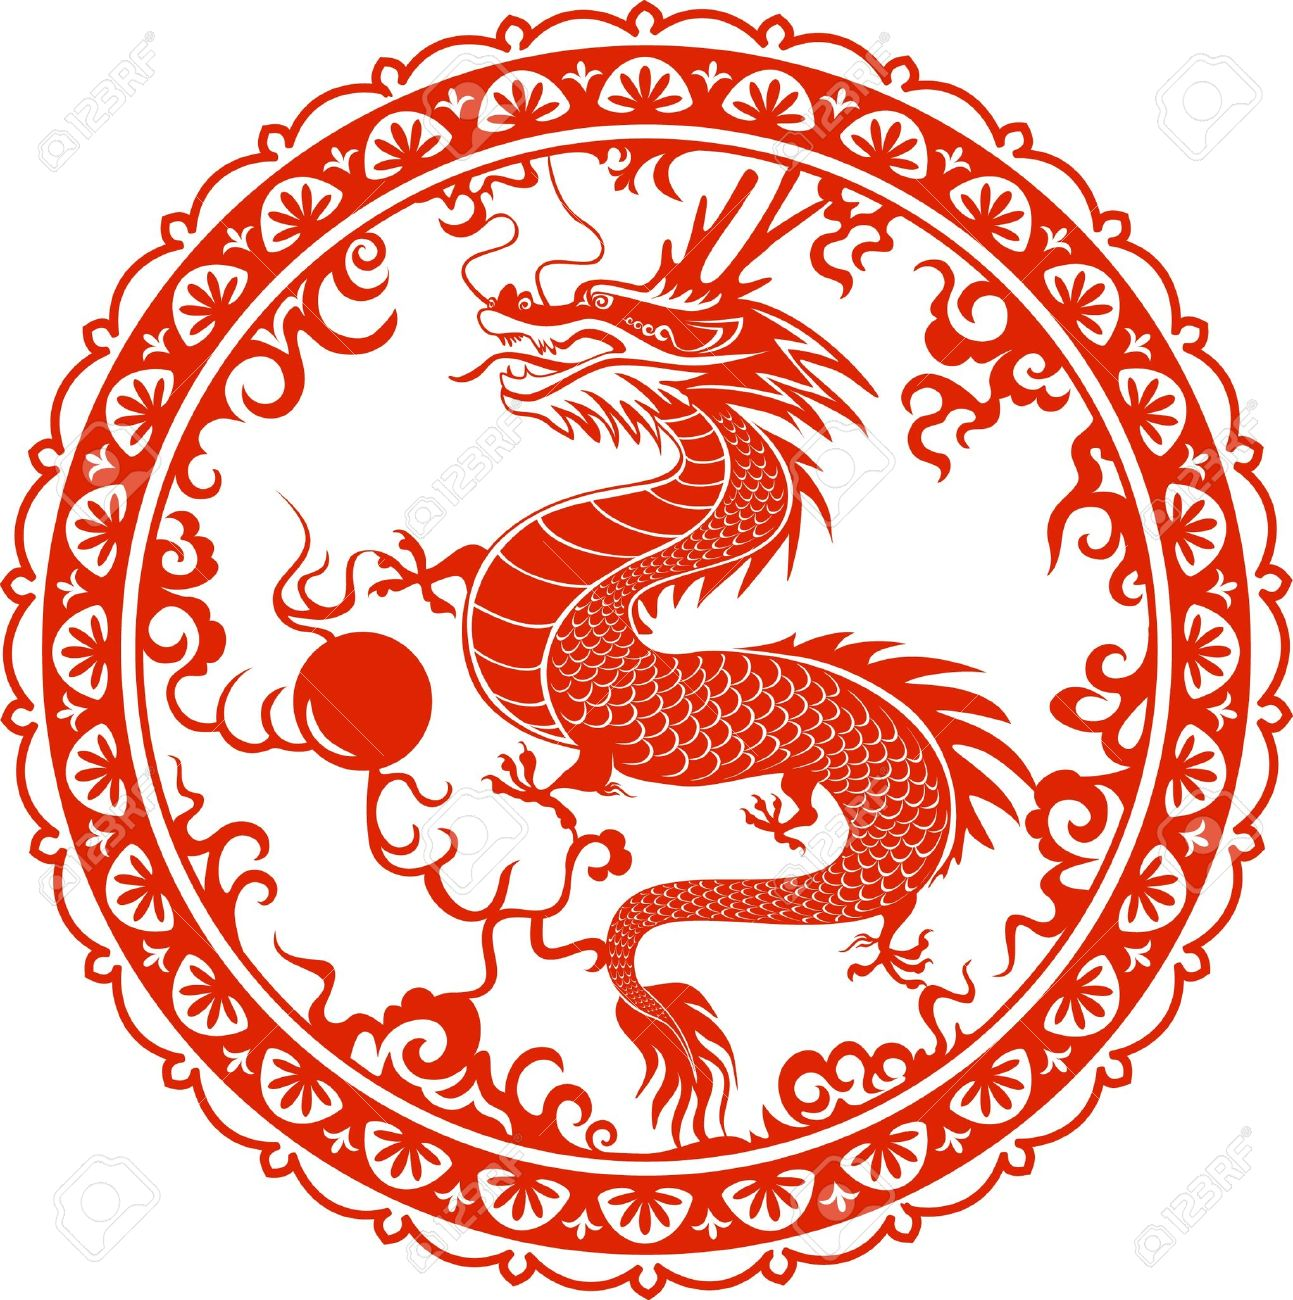 10,985 Chinese Dragon Stock Vector Illustration And Royalty Free ...